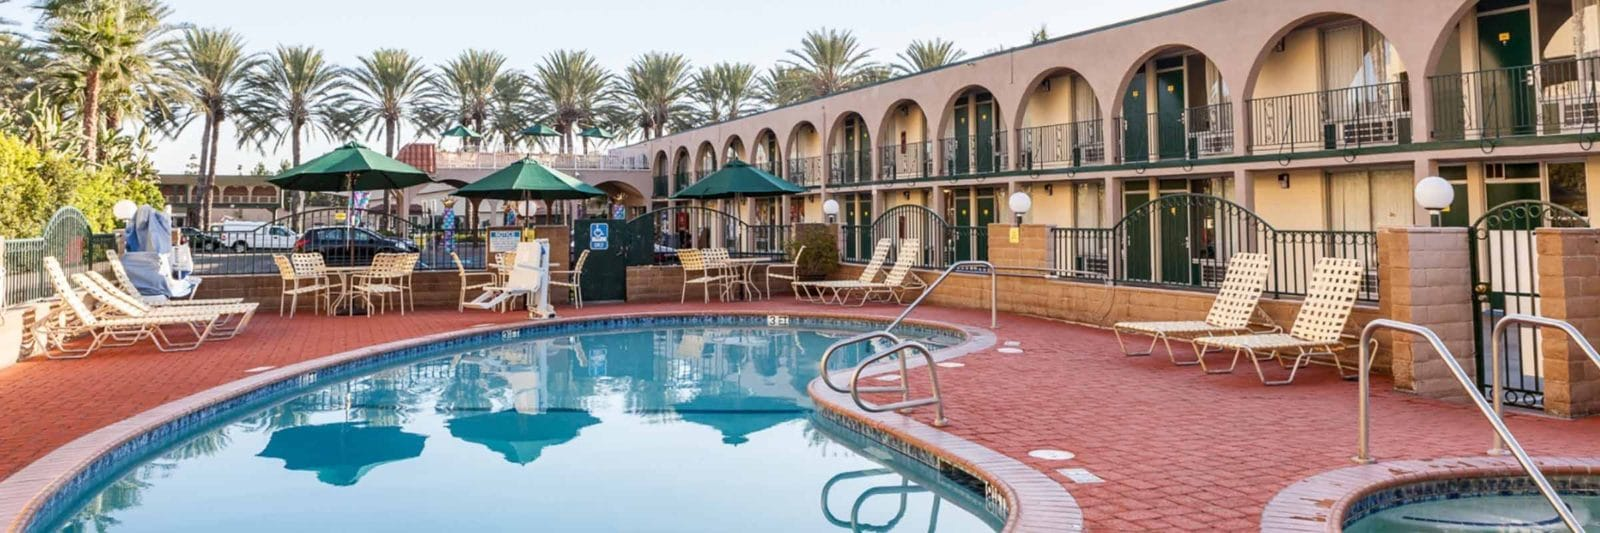 Affordable-Hotel-Near-Disneyland®-with-pool-hot-tub-2400